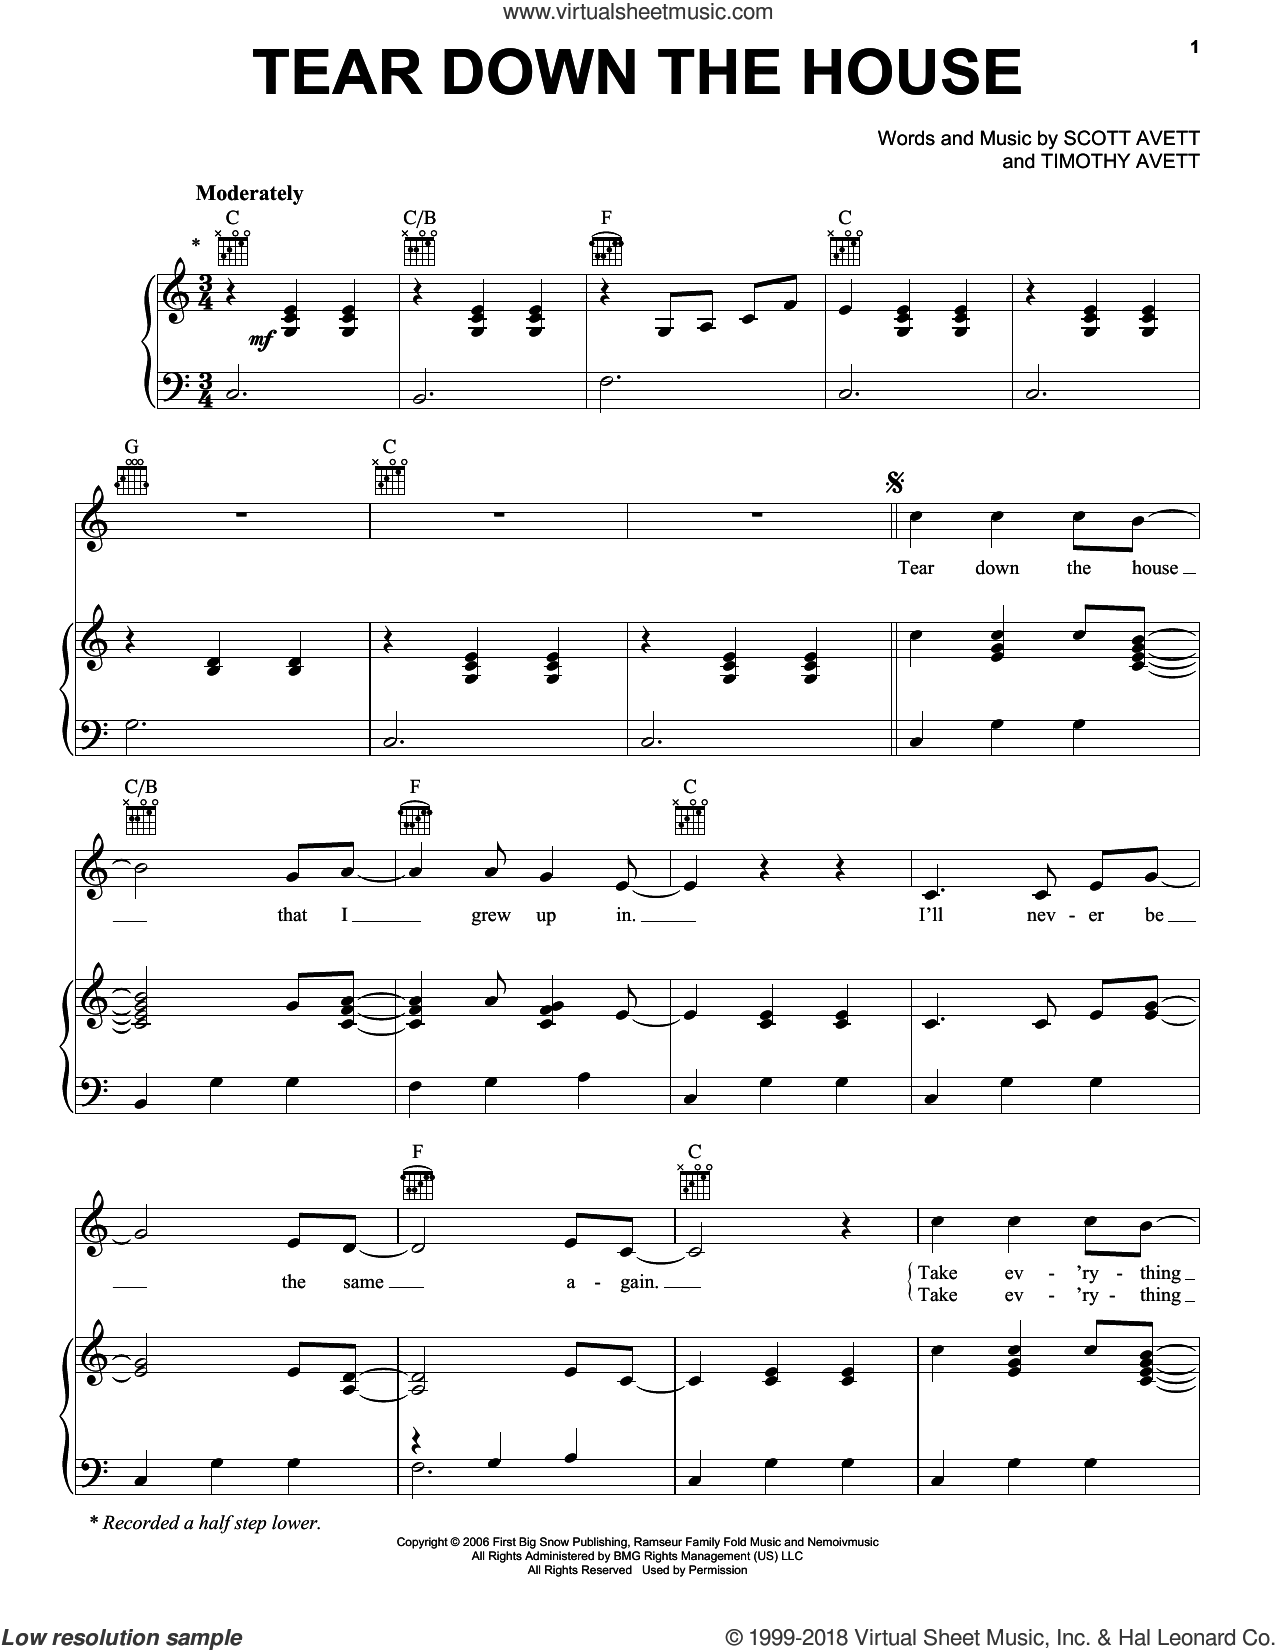 Tear Down The House sheet music for voice, piano or guitar by Timothy Avett